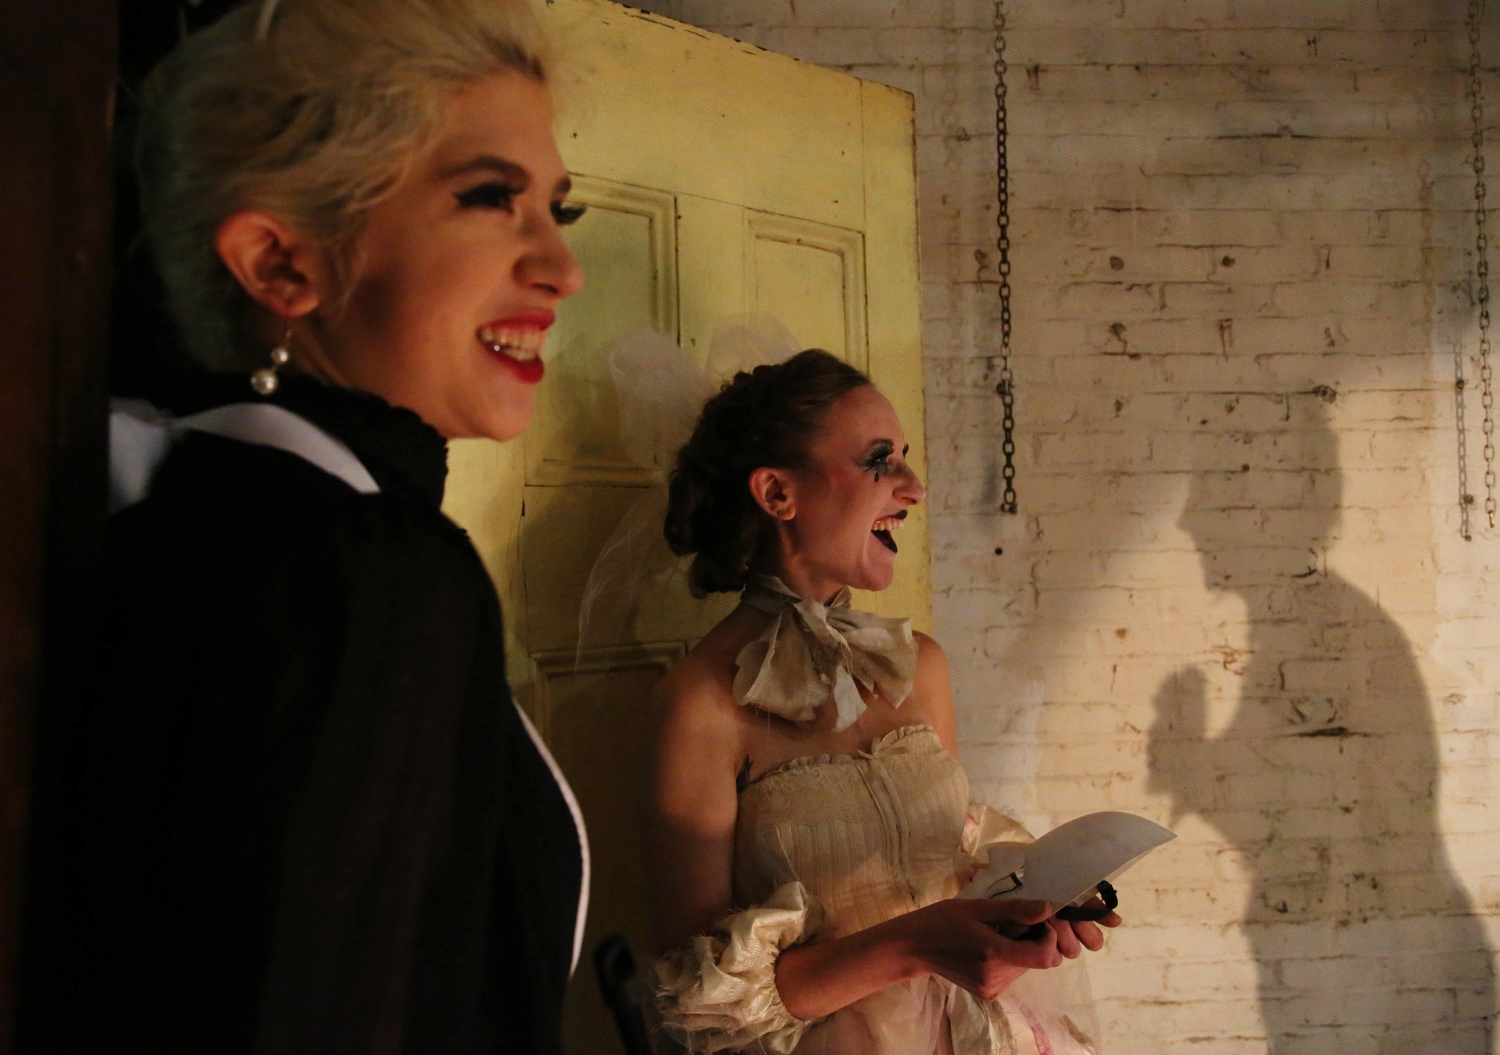 """Amy Brooks (whose shadow is shown right) talks to Burlesque Dancers Pearl Buttons (left) and Devora Darling (second from left) during the first dress rehearsal of the """"Wrathskellar Tales,"""" a production of the Burlesque Troupe, """"The Boston BeauTease,"""" on Oct. 19, 2016 in Cambridge, Mass.""""  It's [burlesque dancing] been such therapy for me, to be there, and to feel freer with my body, and to allow people to see things that I never let people see before, with lights on,"""" Brooks said, laughing.  Full story here."""